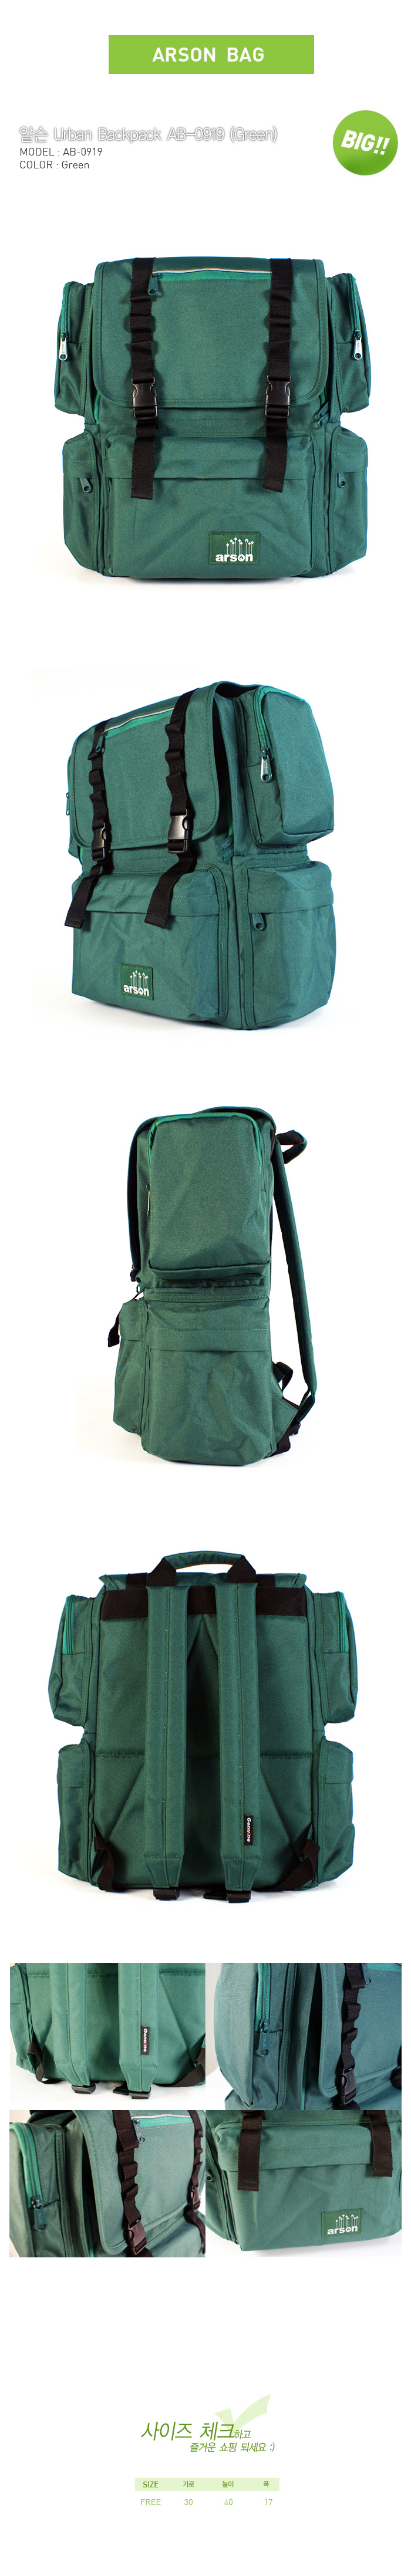 [ ARSON ] AB-0919 (Green)/Backpack School Bag